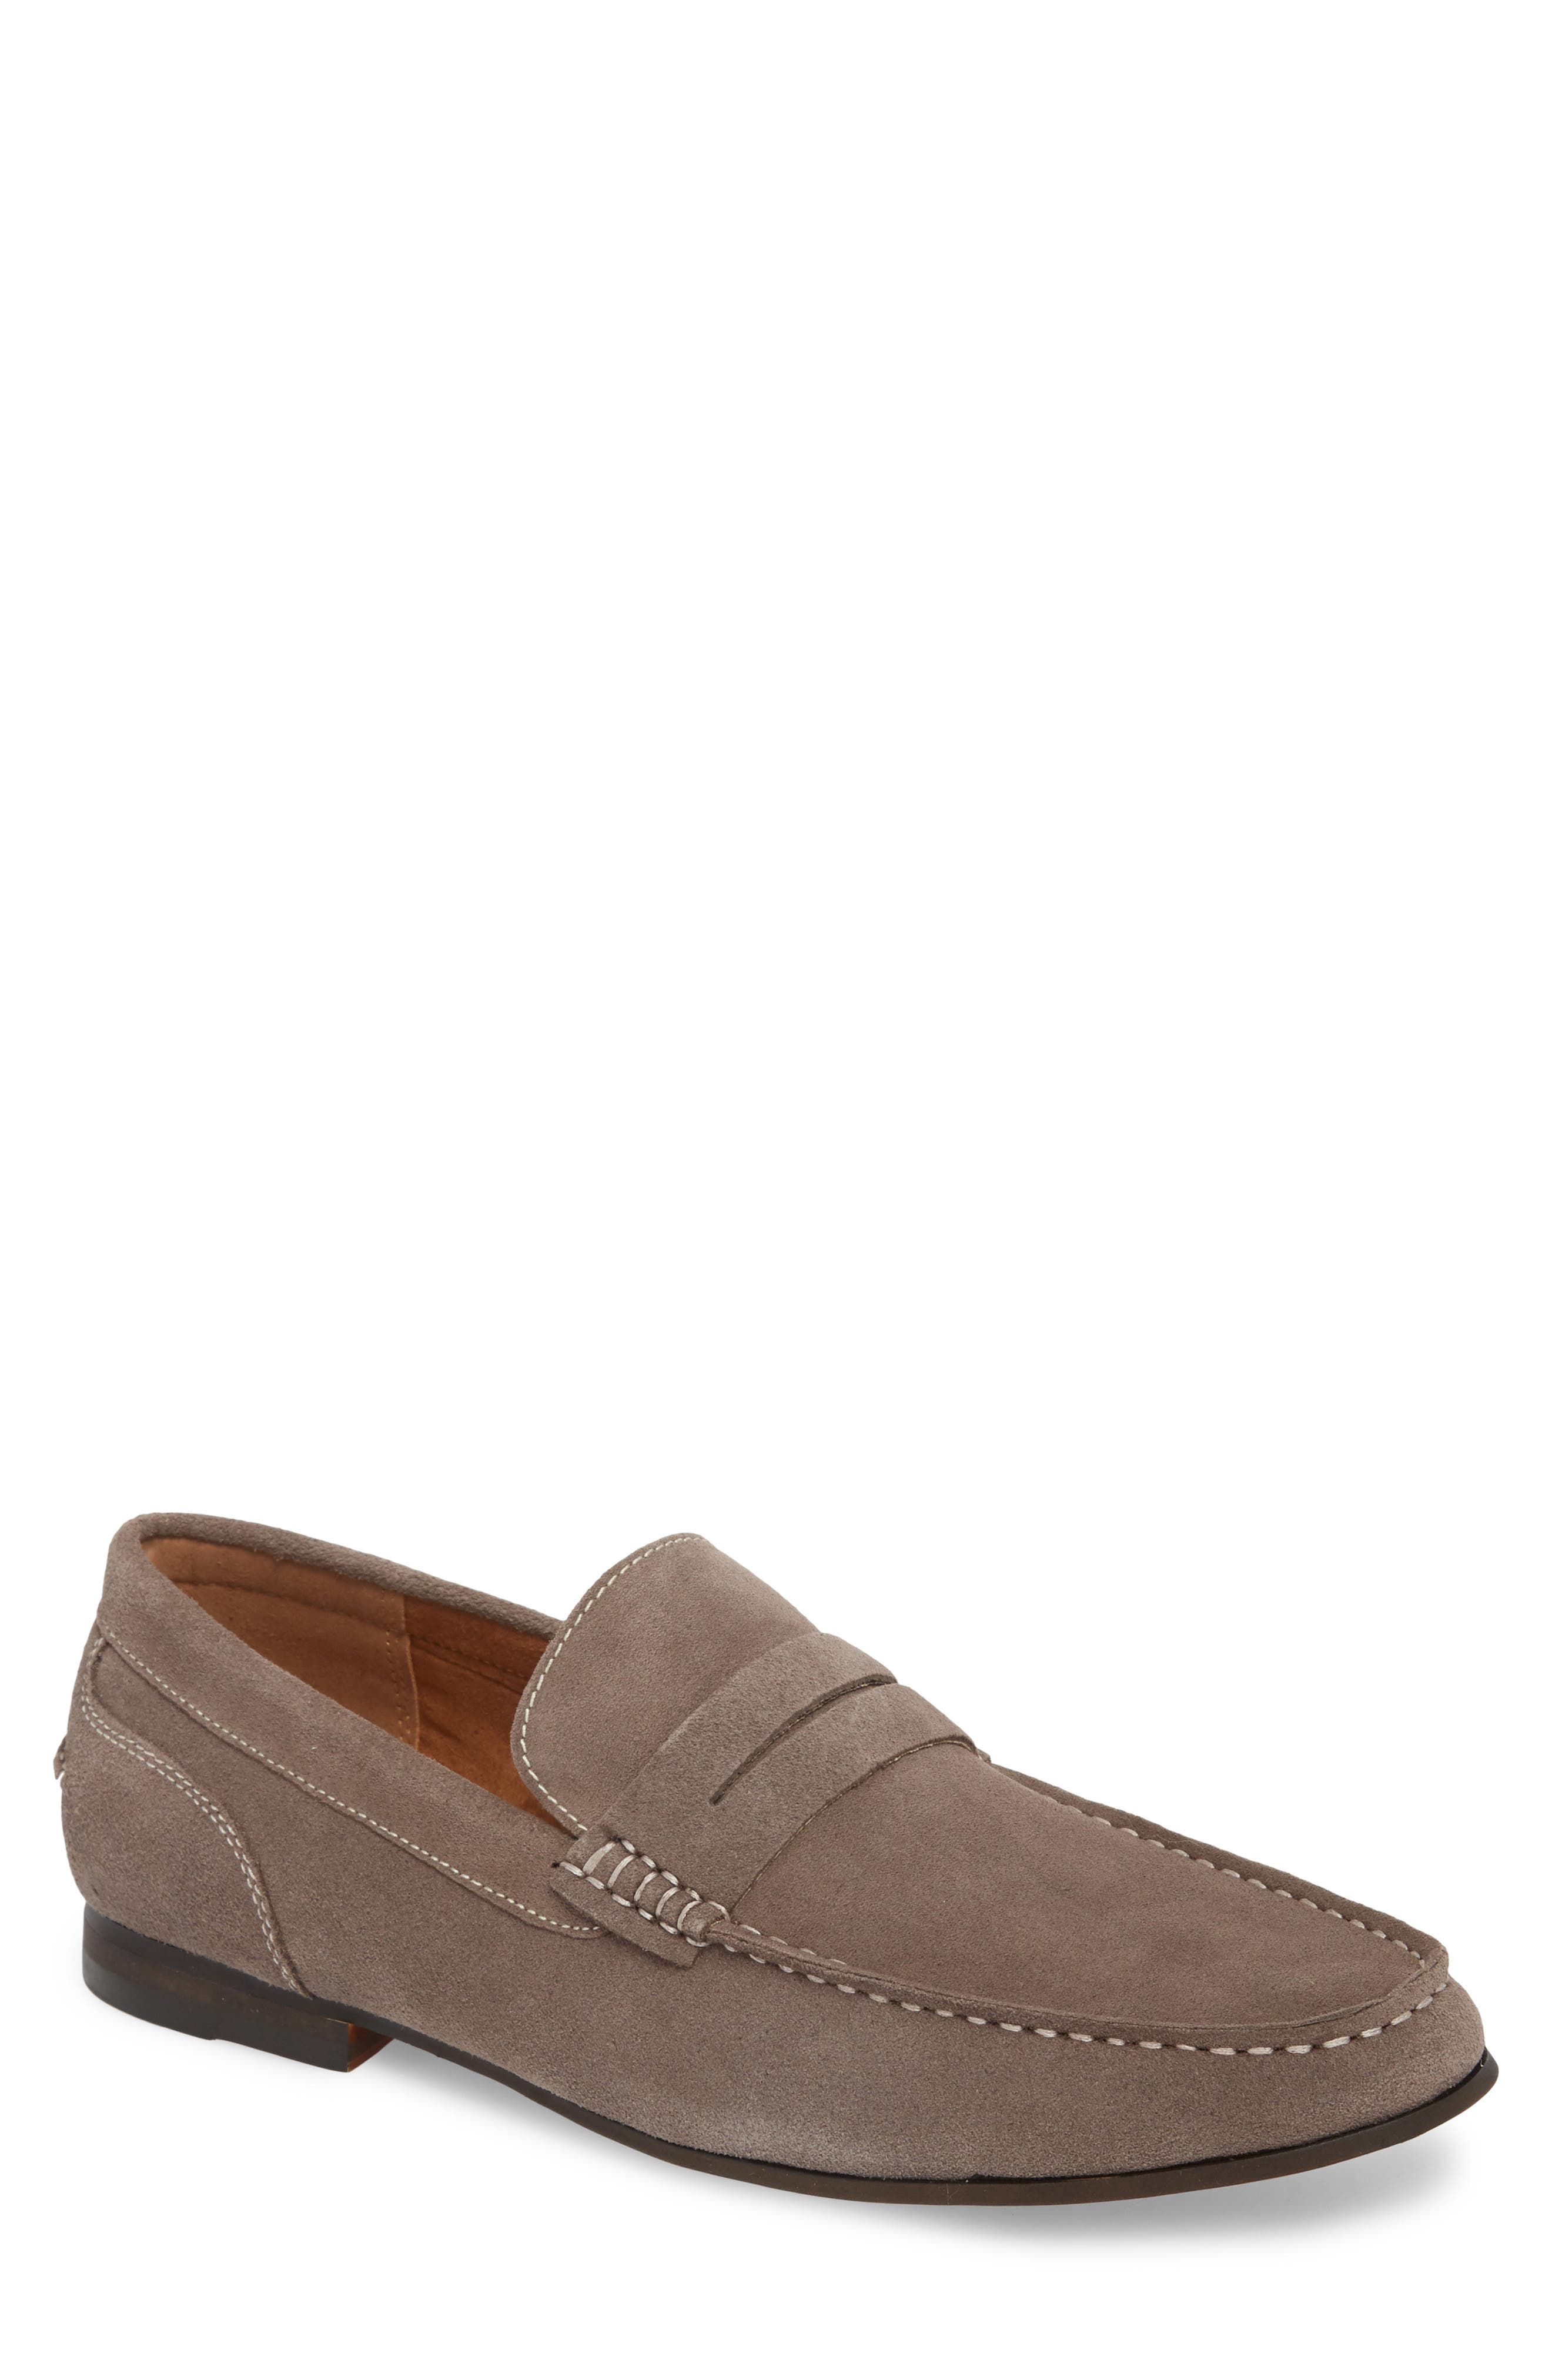 Crespo Penny Loafer,                         Main,                         color, Grey